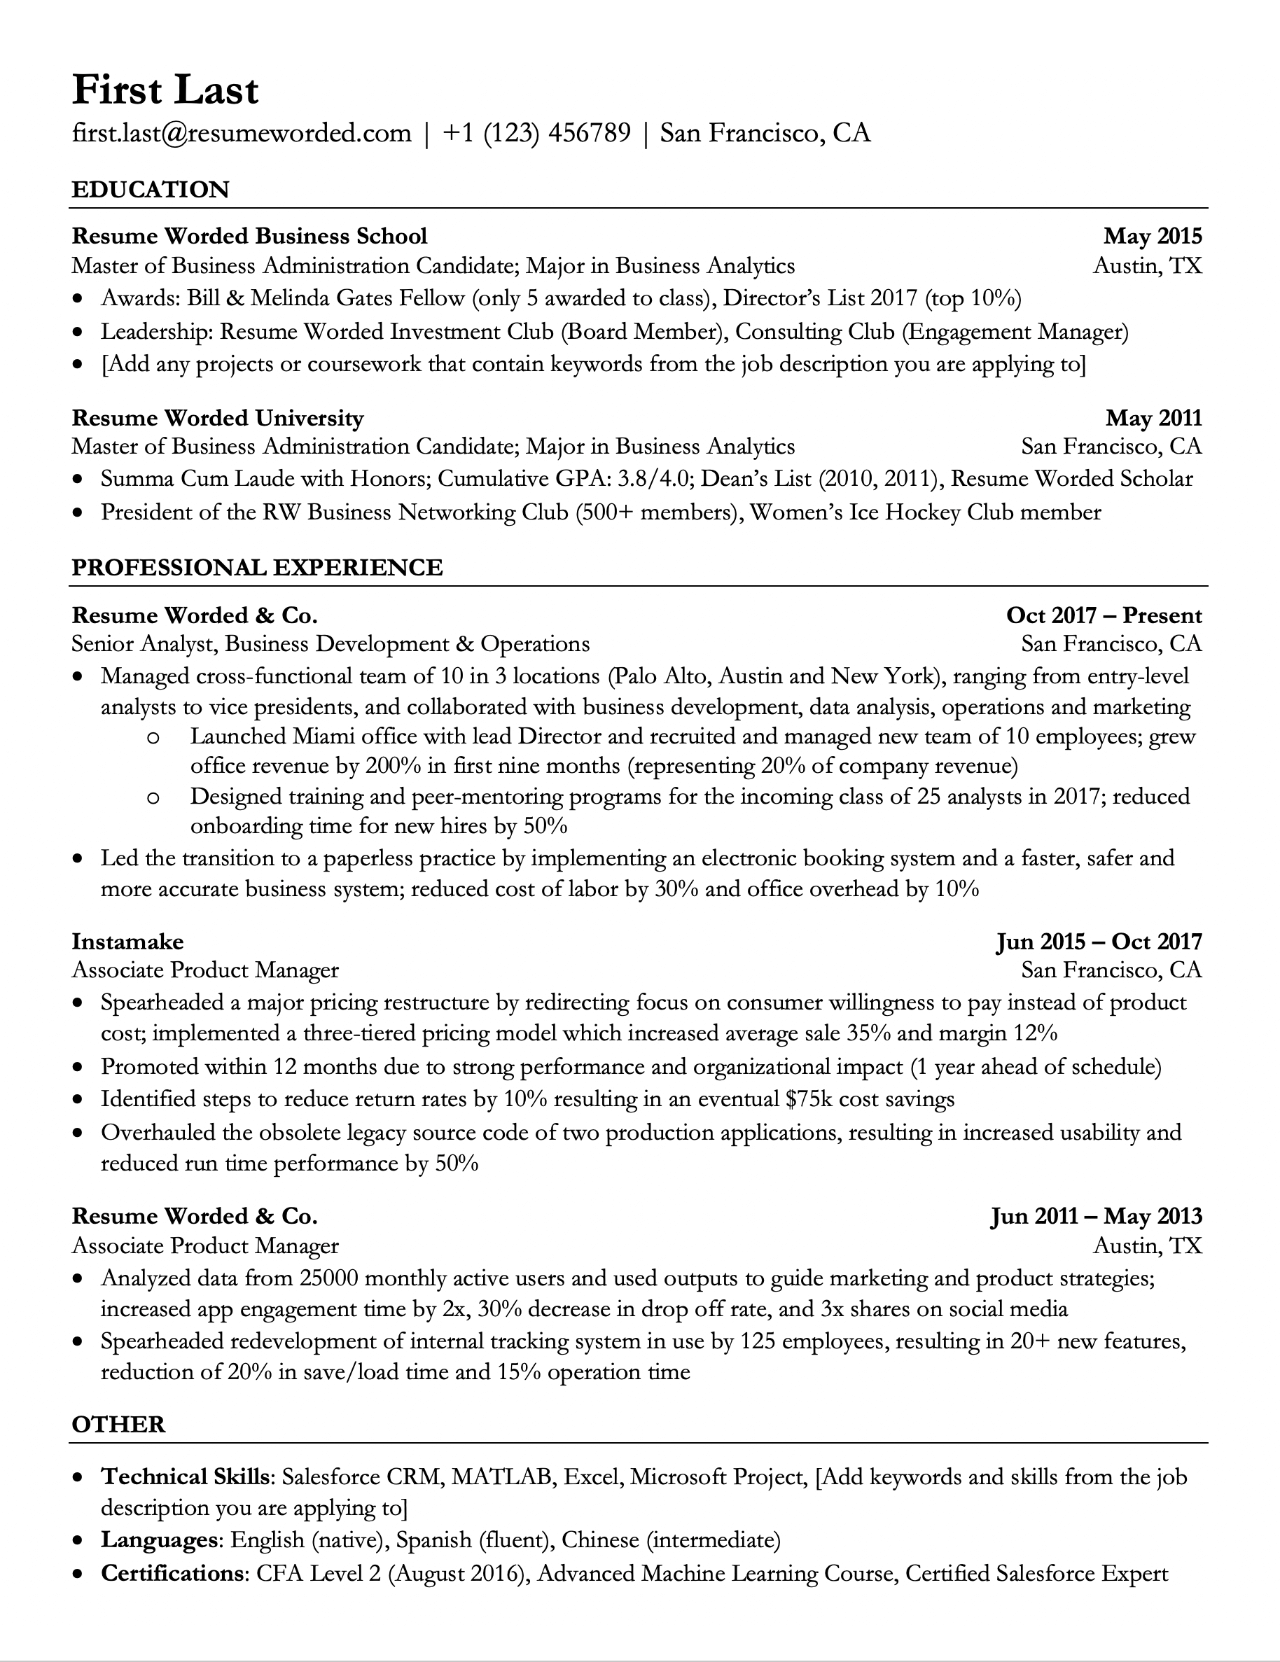 ats resume template for entry level college graduates